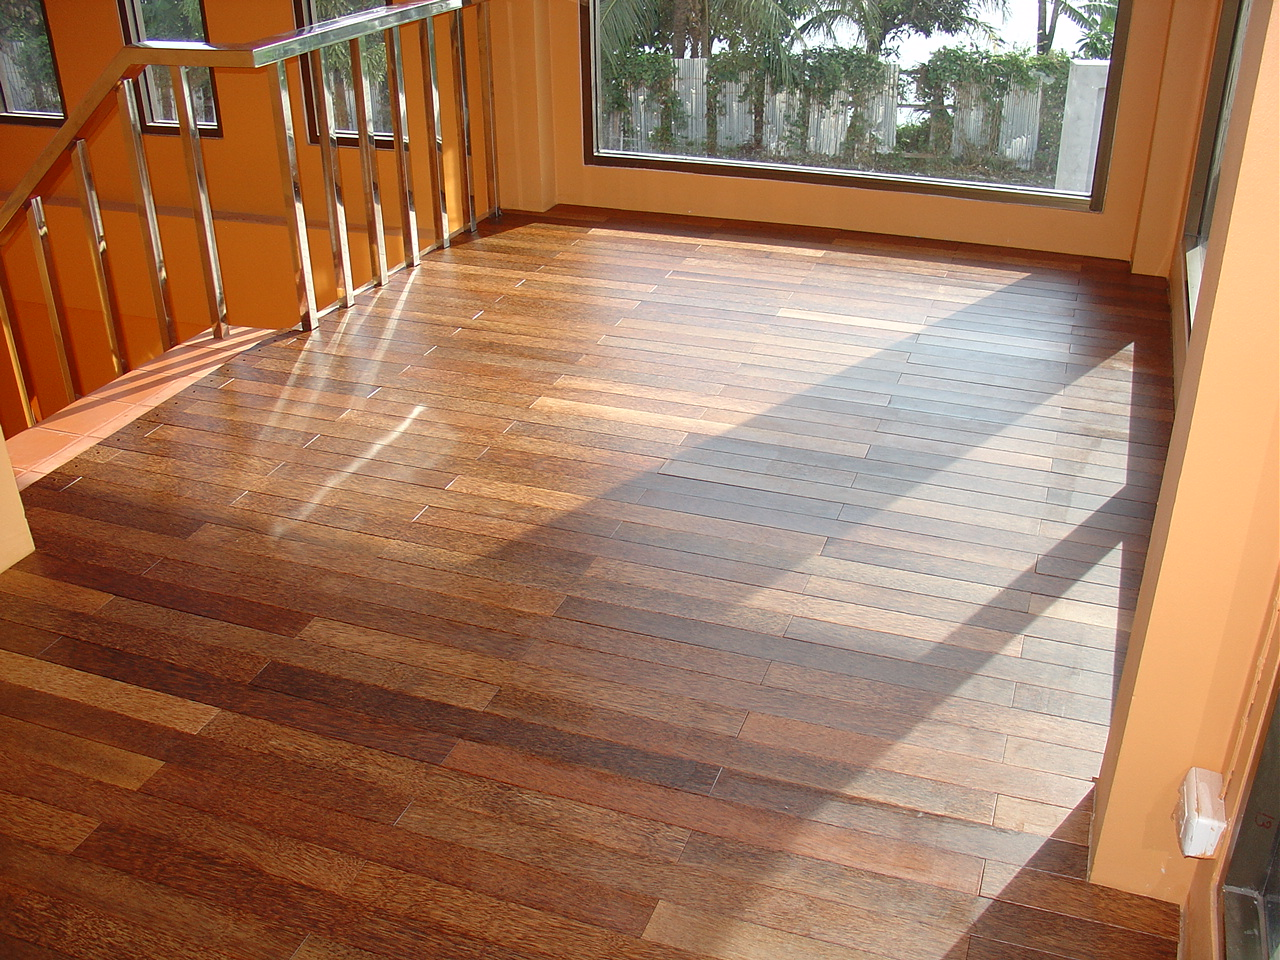 Hardwood floor vs laminate the pros and cons homesfeed - Pros and cons of hardwood flooring ...